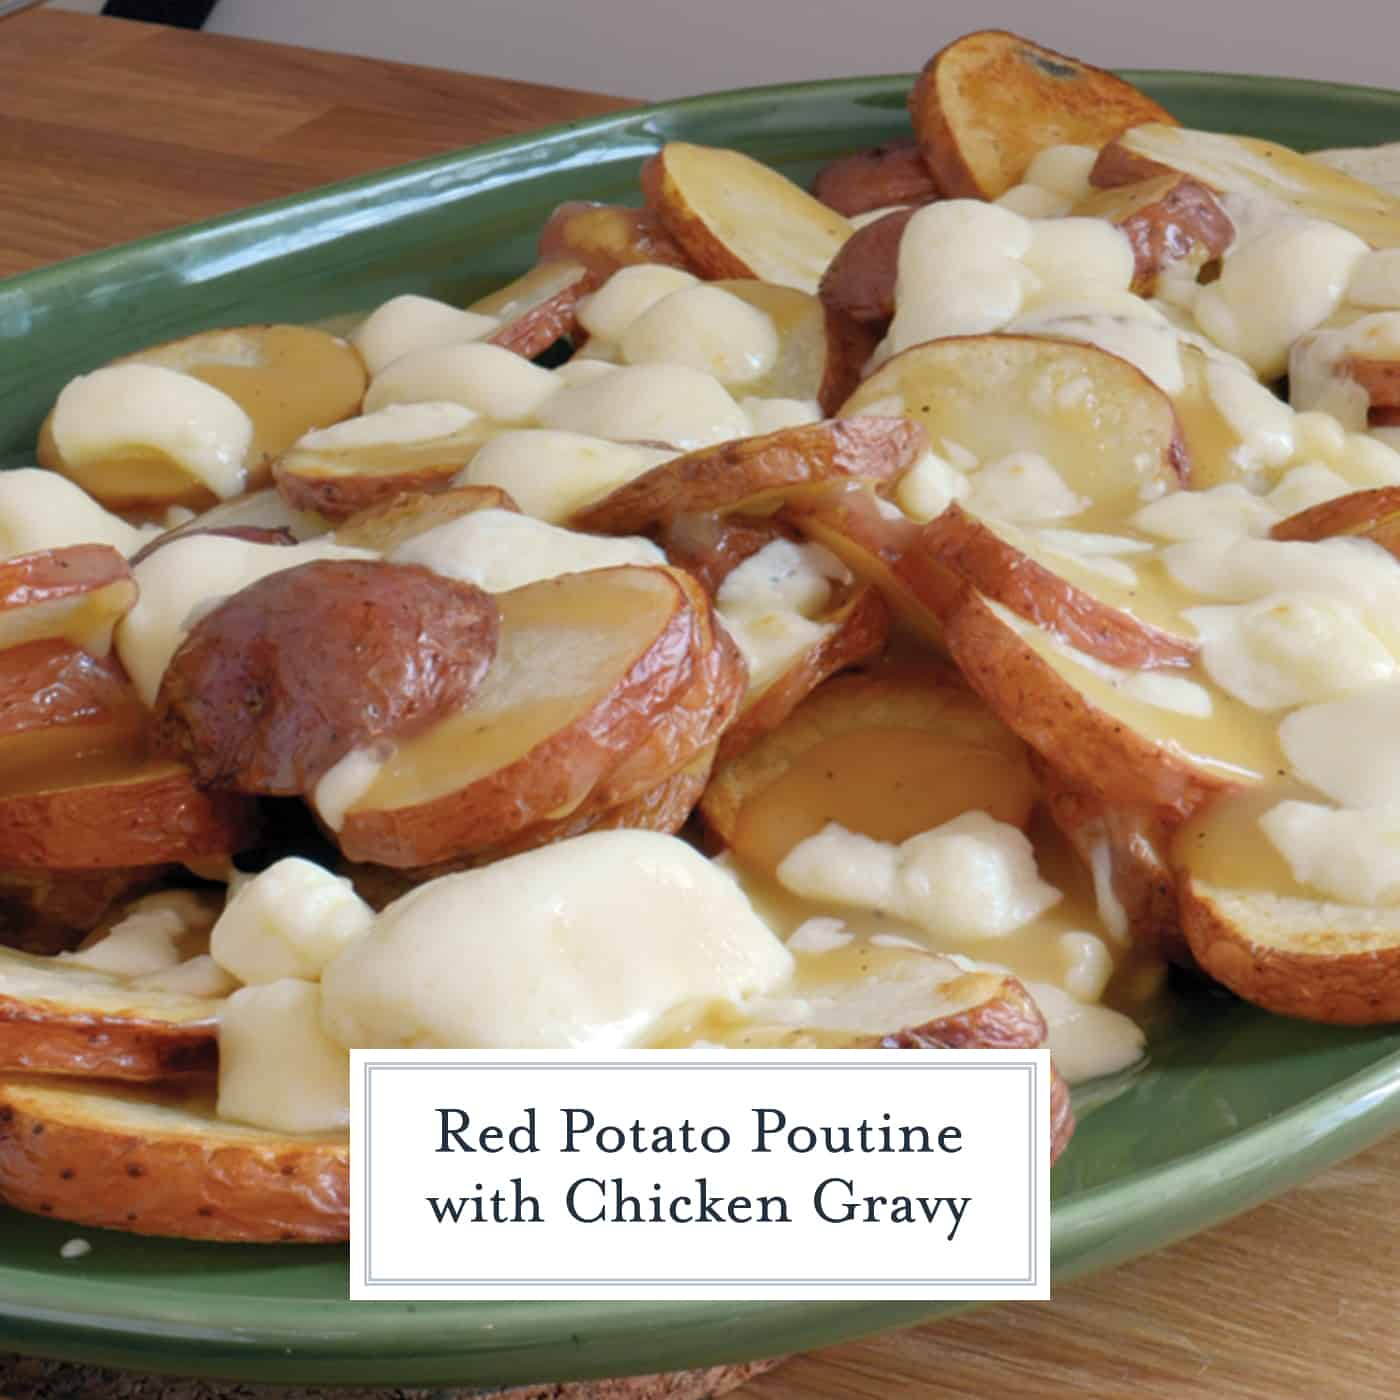 This Poutine Recipe is a delicious, classic Canadian dish made from French fries, cheese